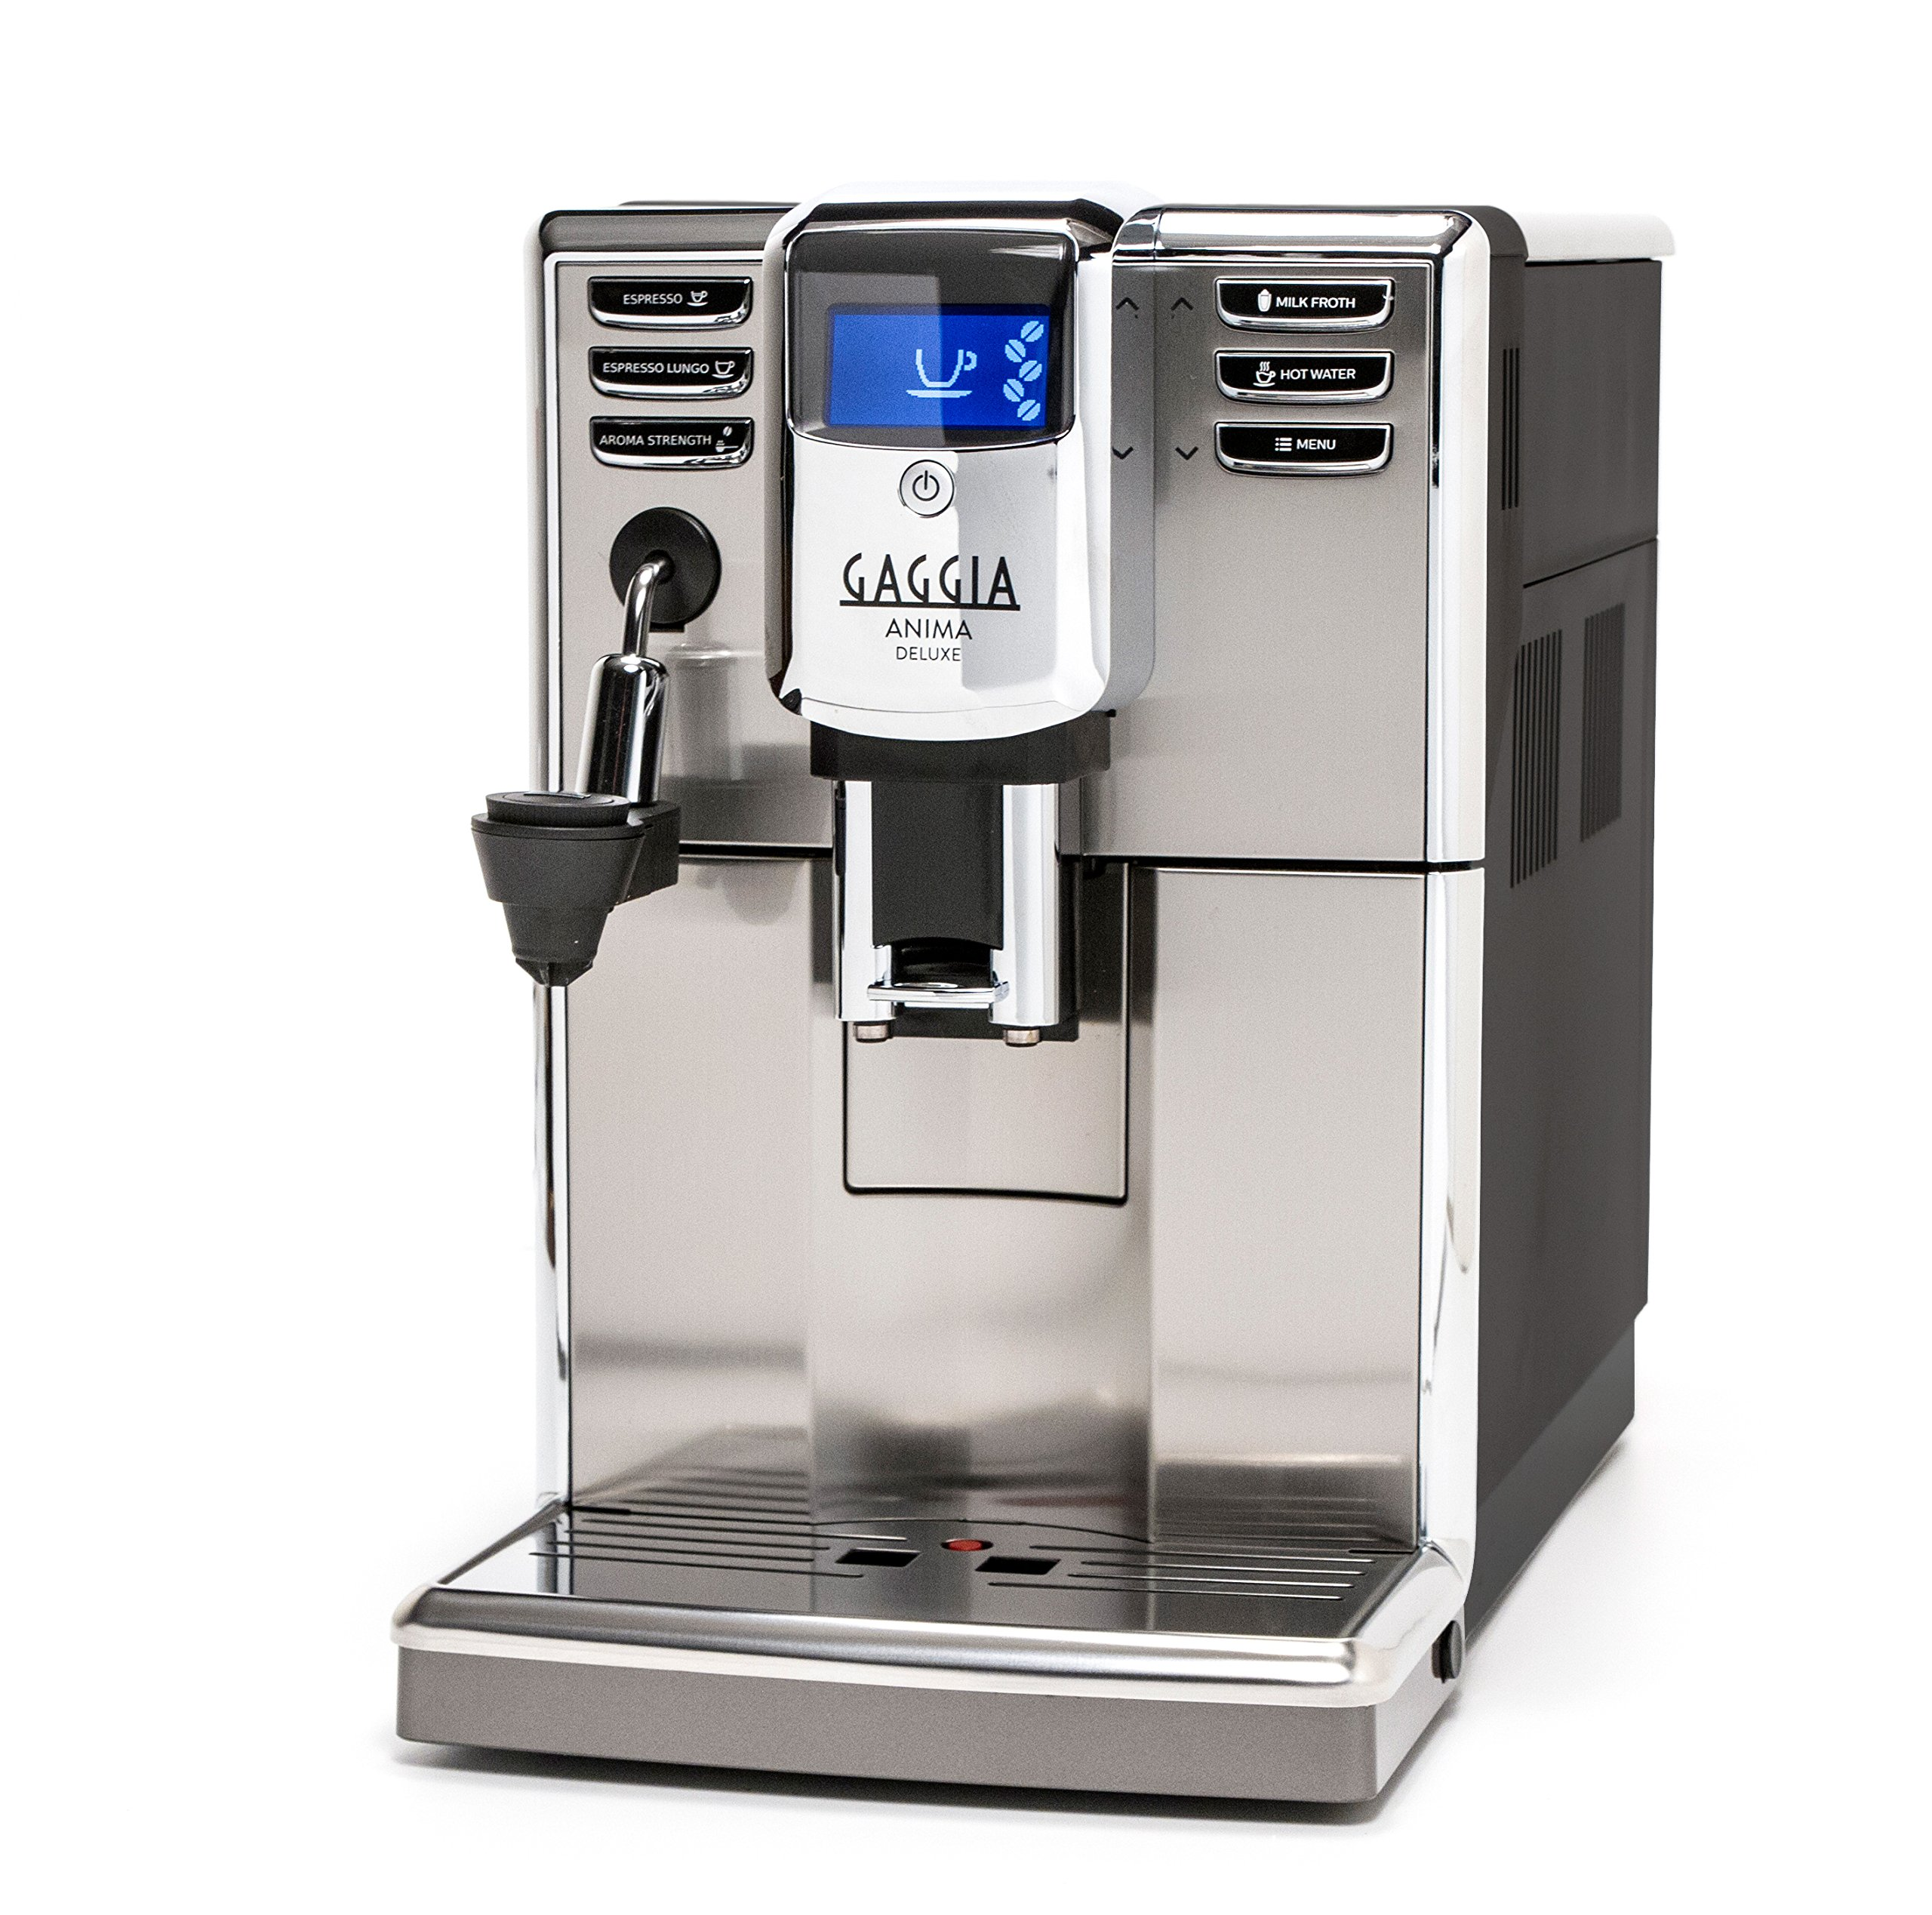 Gaggia Anima Deluxe Coffee and Espresso Machine, Includes Auto Frother for Lattes and Cappuccinos with Programmable Options by Gaggia